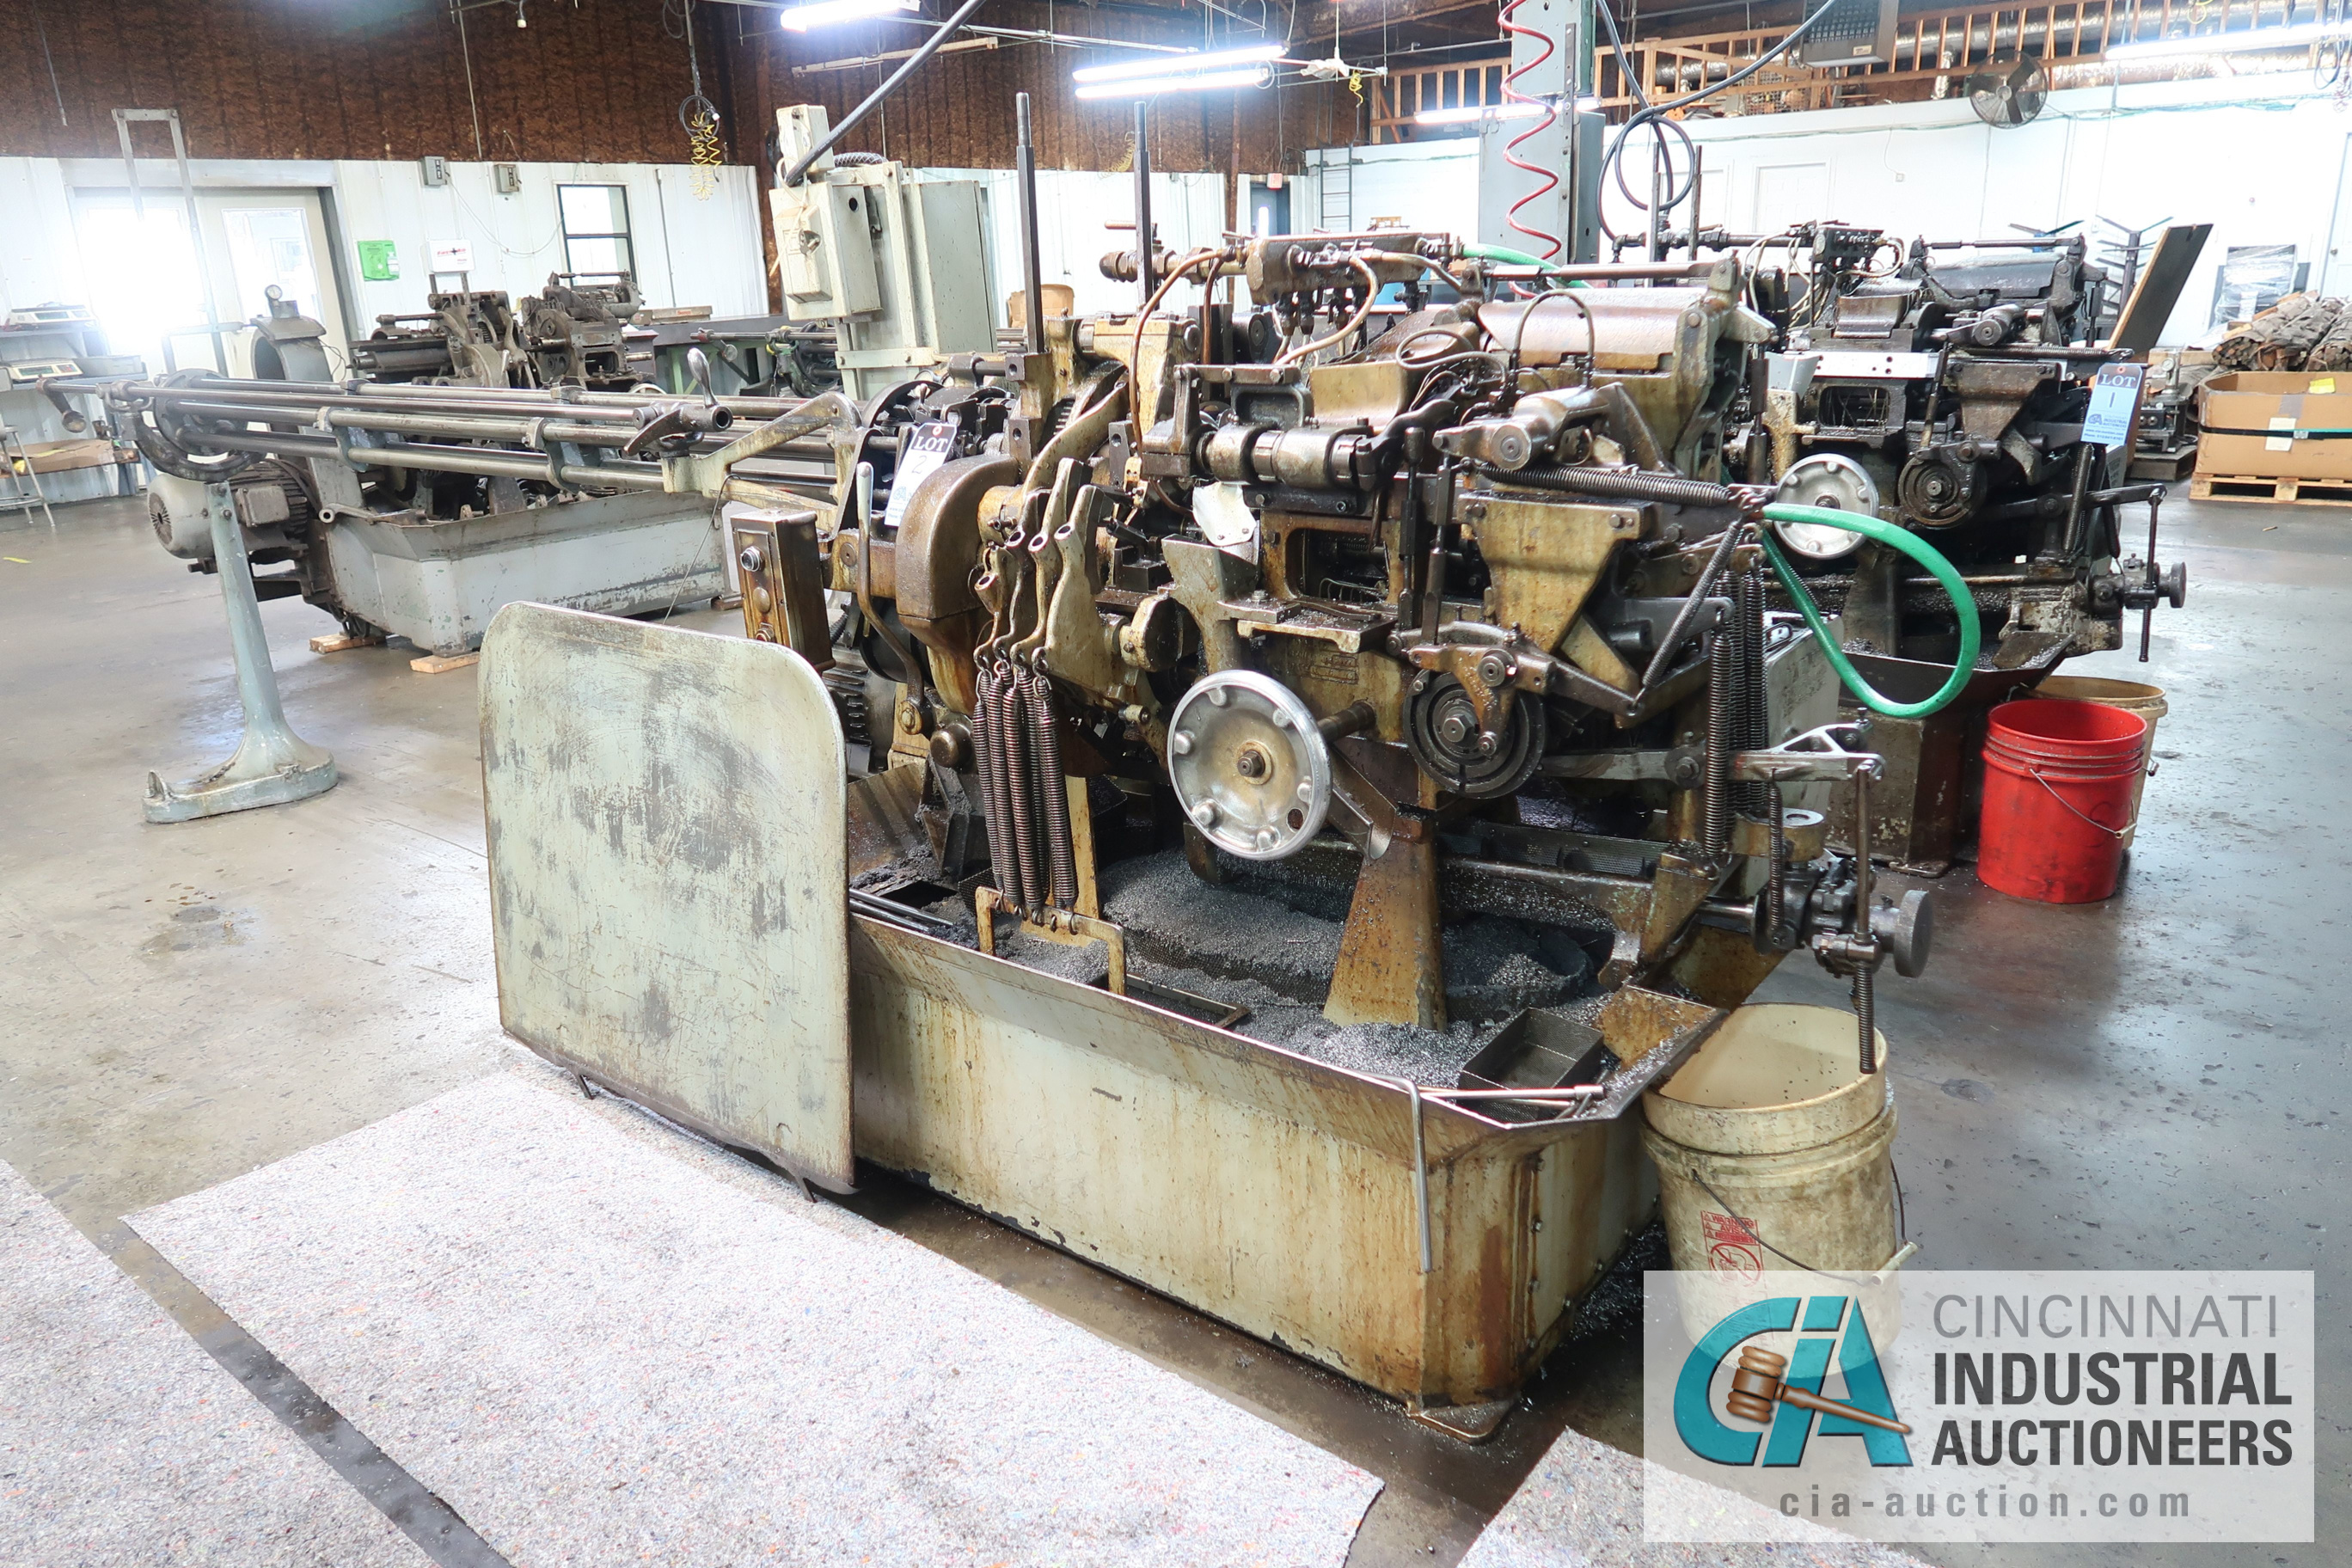 """3/4"""" DAVENPORT 5-SPINDLE SCREW MACHINE; S/N 8077 (NEW 11-1973), WITH THREADING CLUTCH, PICK OFF,"""